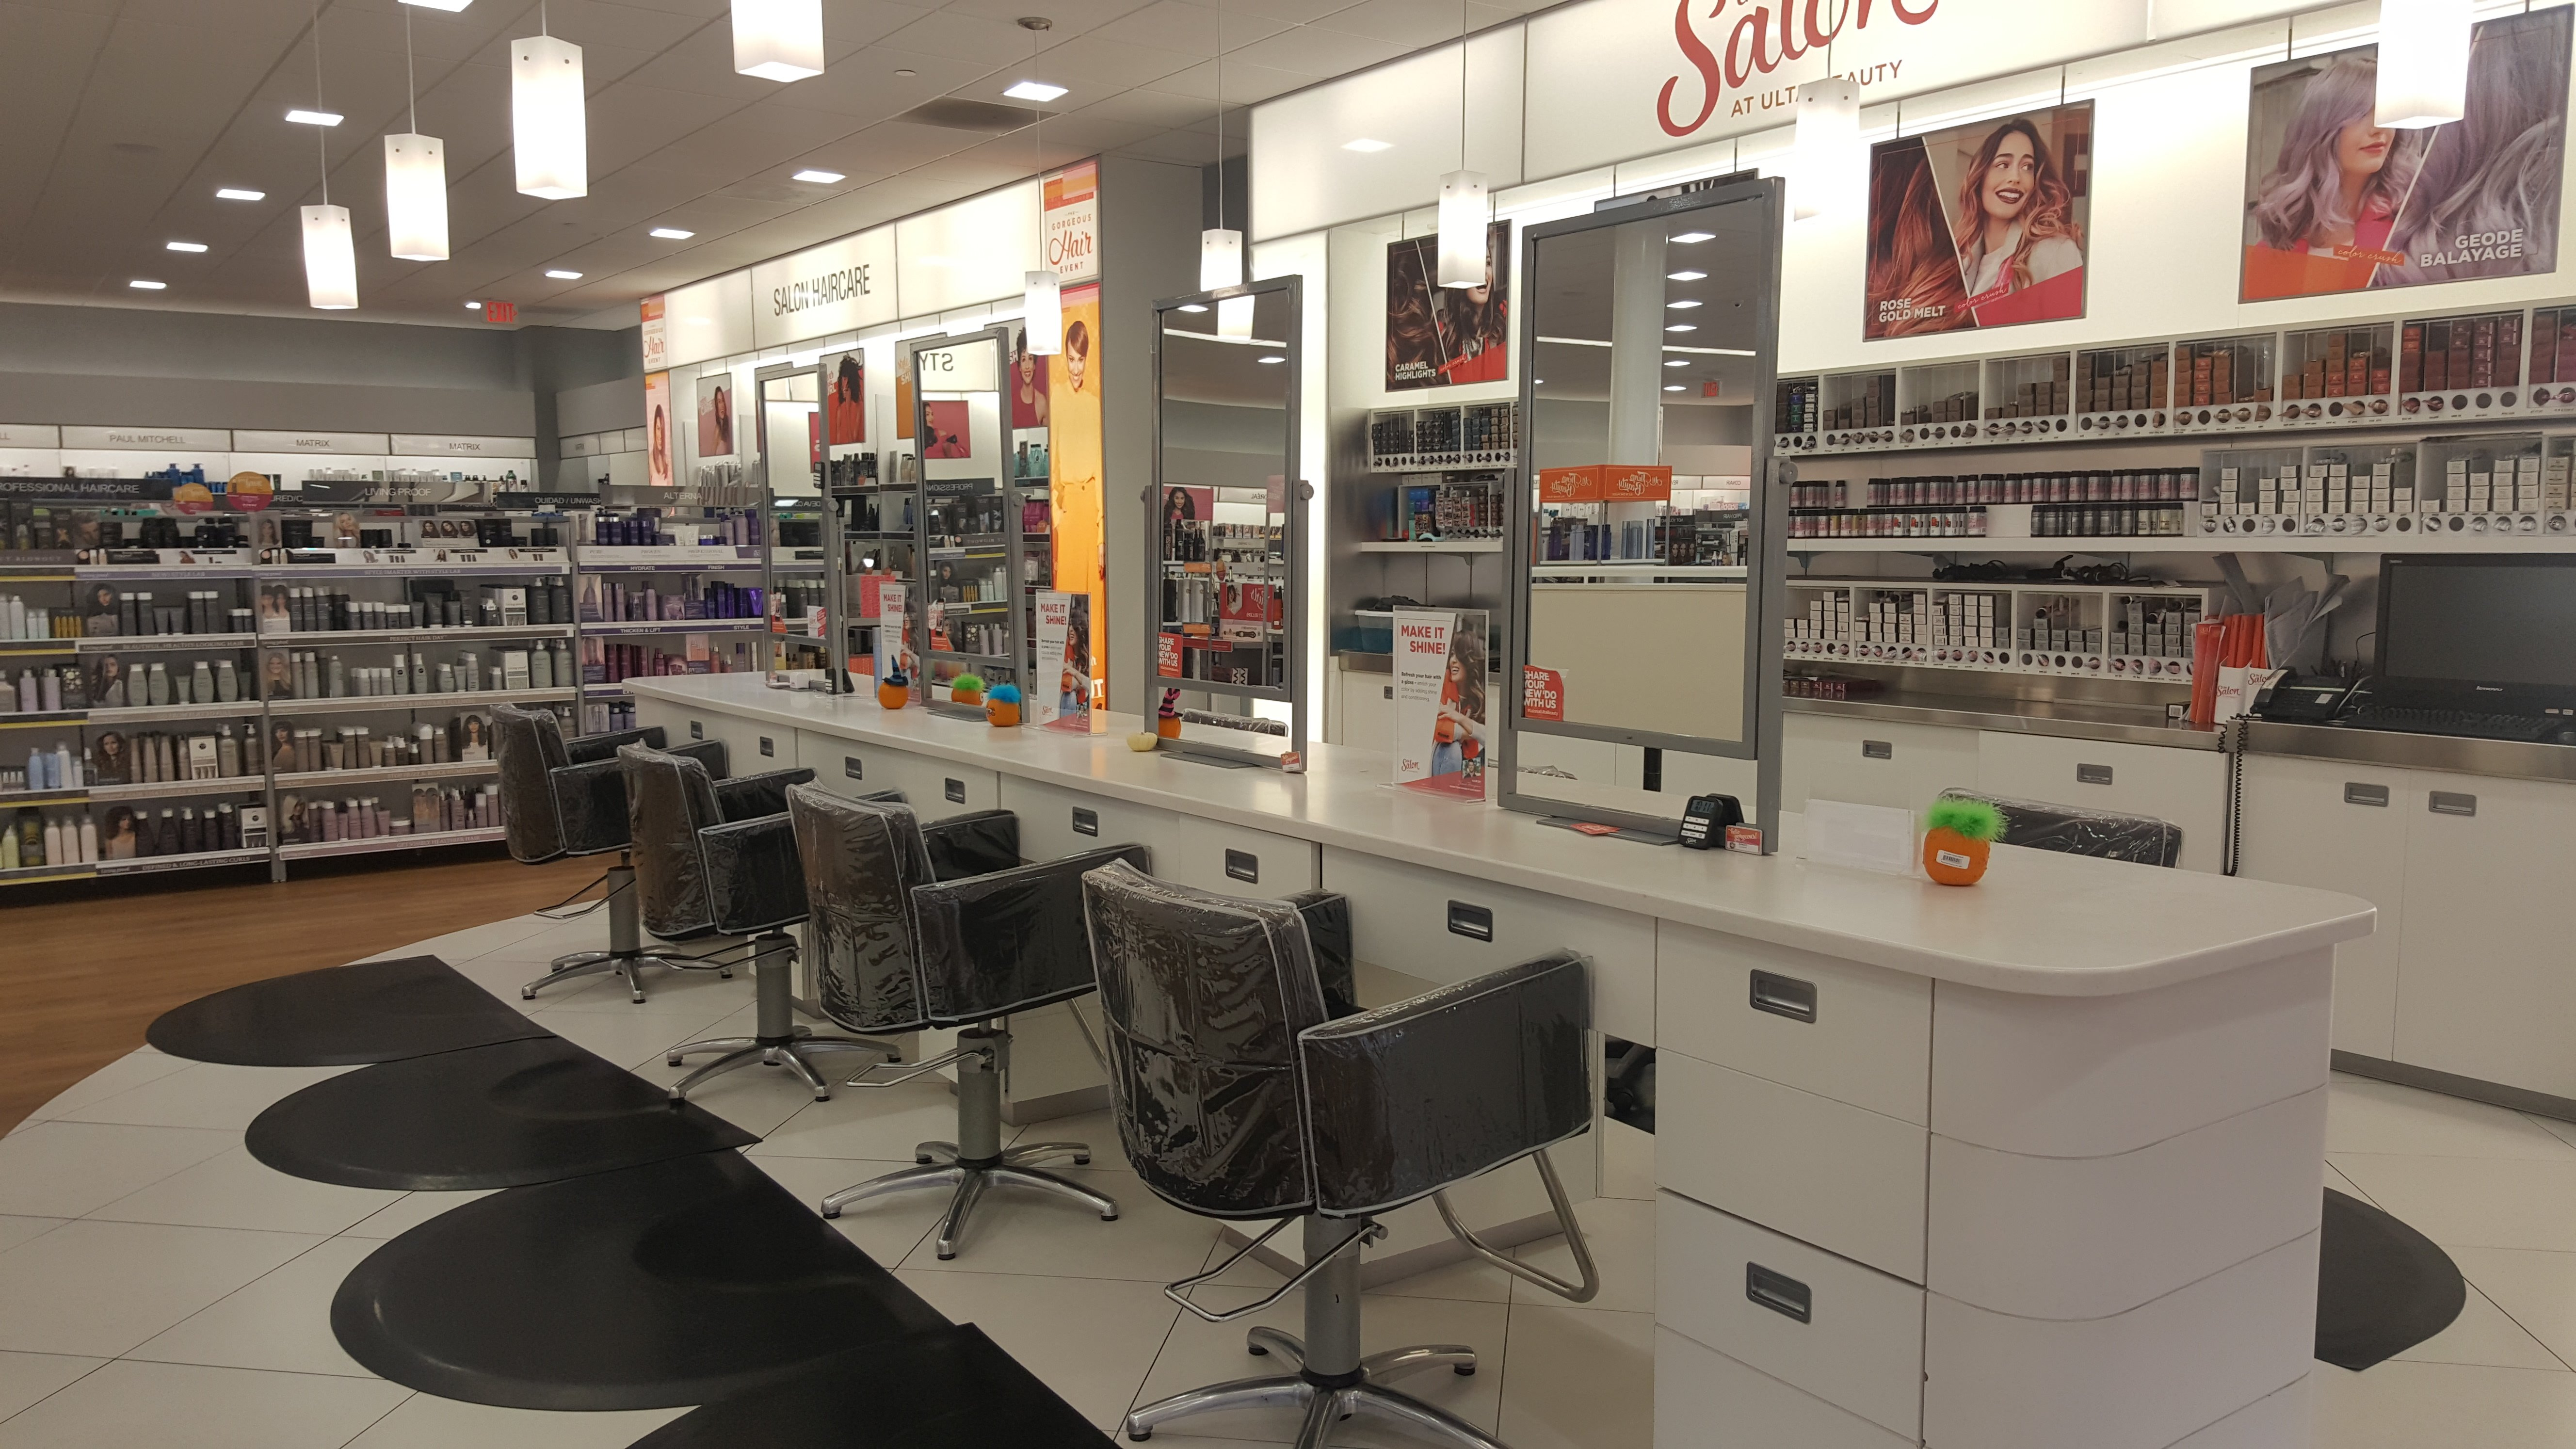 9ec63e0b3d7 I thought I knew Ulta. Yes, they have a big, beautiful well lit store  carrying an insane amount of beauty brands from makeup and nail polish to  hair ...